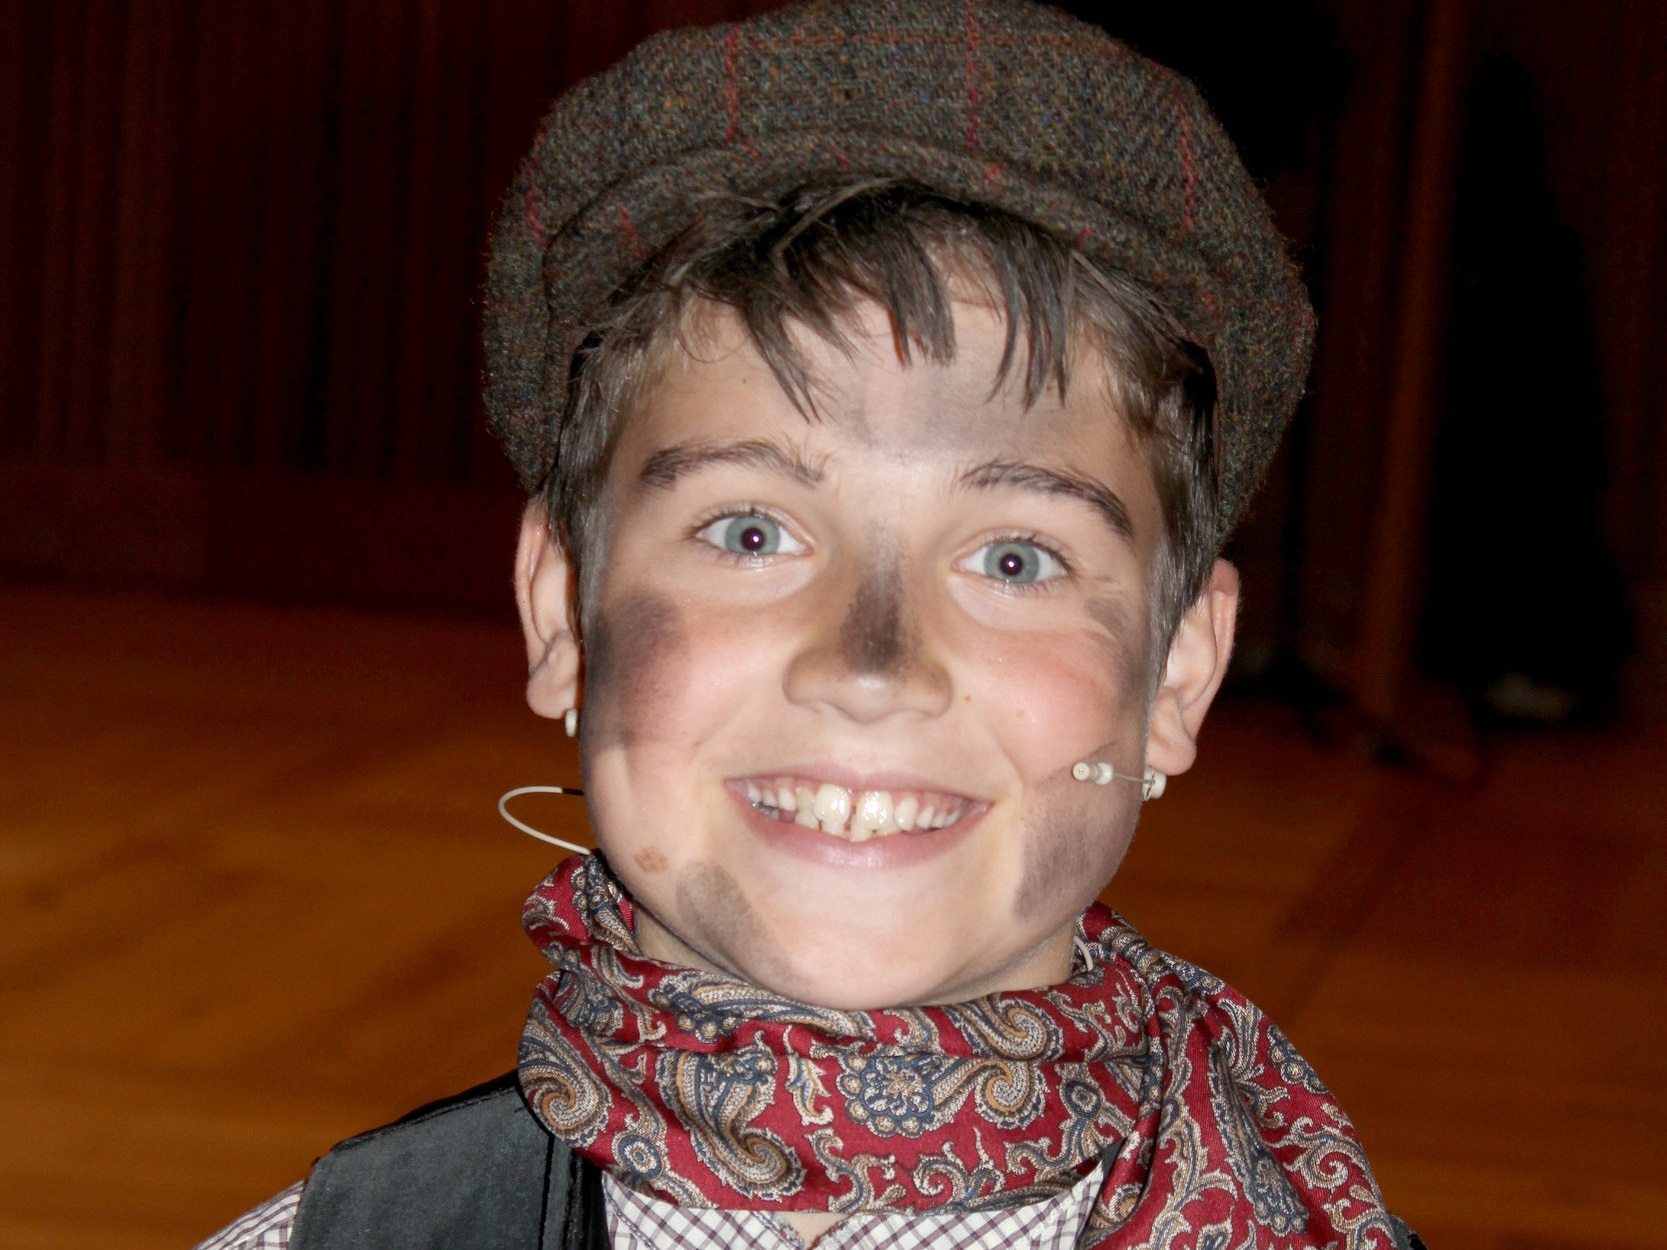 On the stage: chorister Will in the role of Bert in the school's production of Mary Poppins